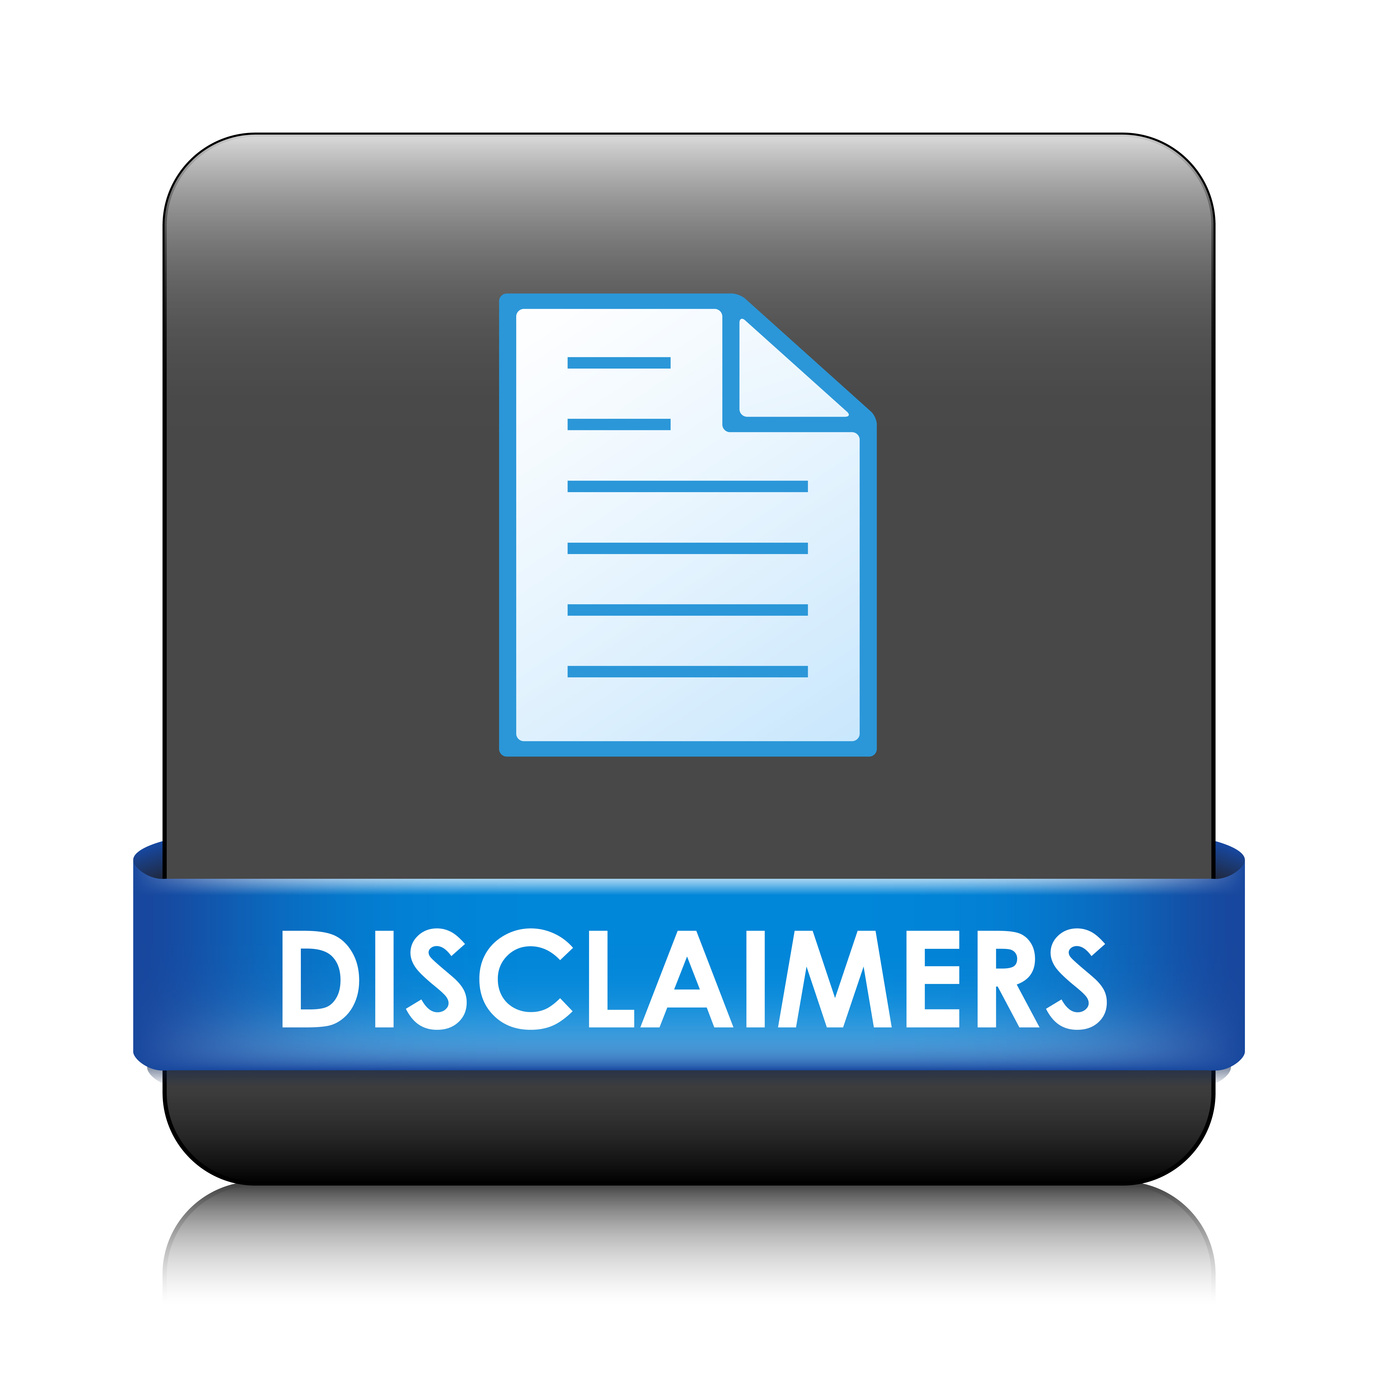 Website Disclaimers And Terms Of Use